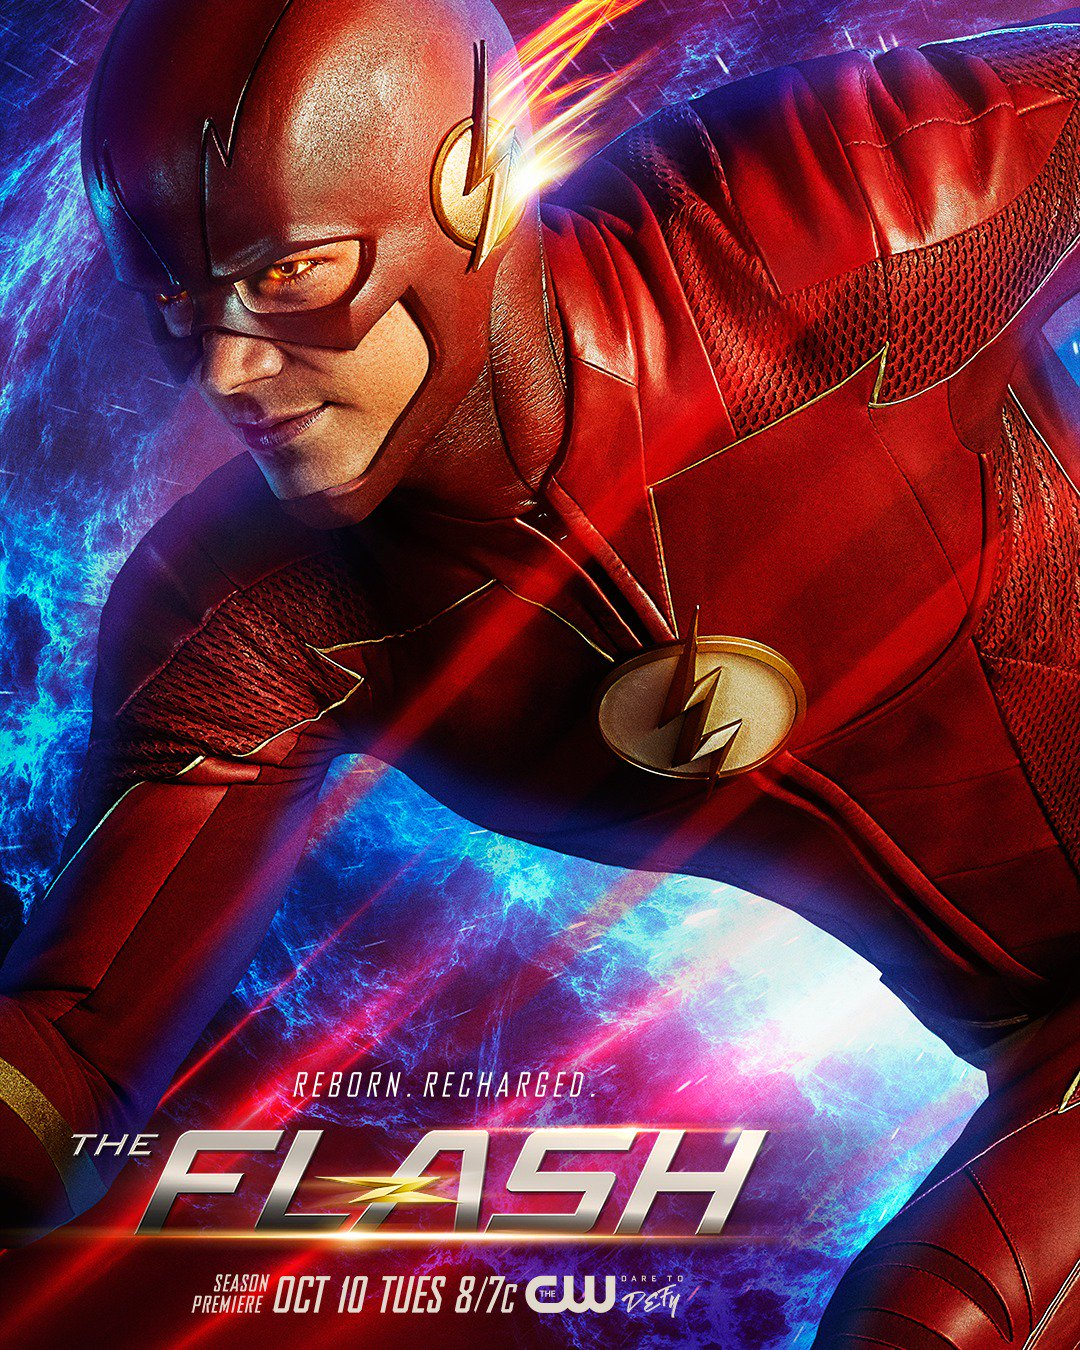 The Flash (2014) Dual Audio [Hindi+English] Blu-Ray – 720P HEVC – x264 – 200MB -[Season 01] Download [Episode 13 Added]